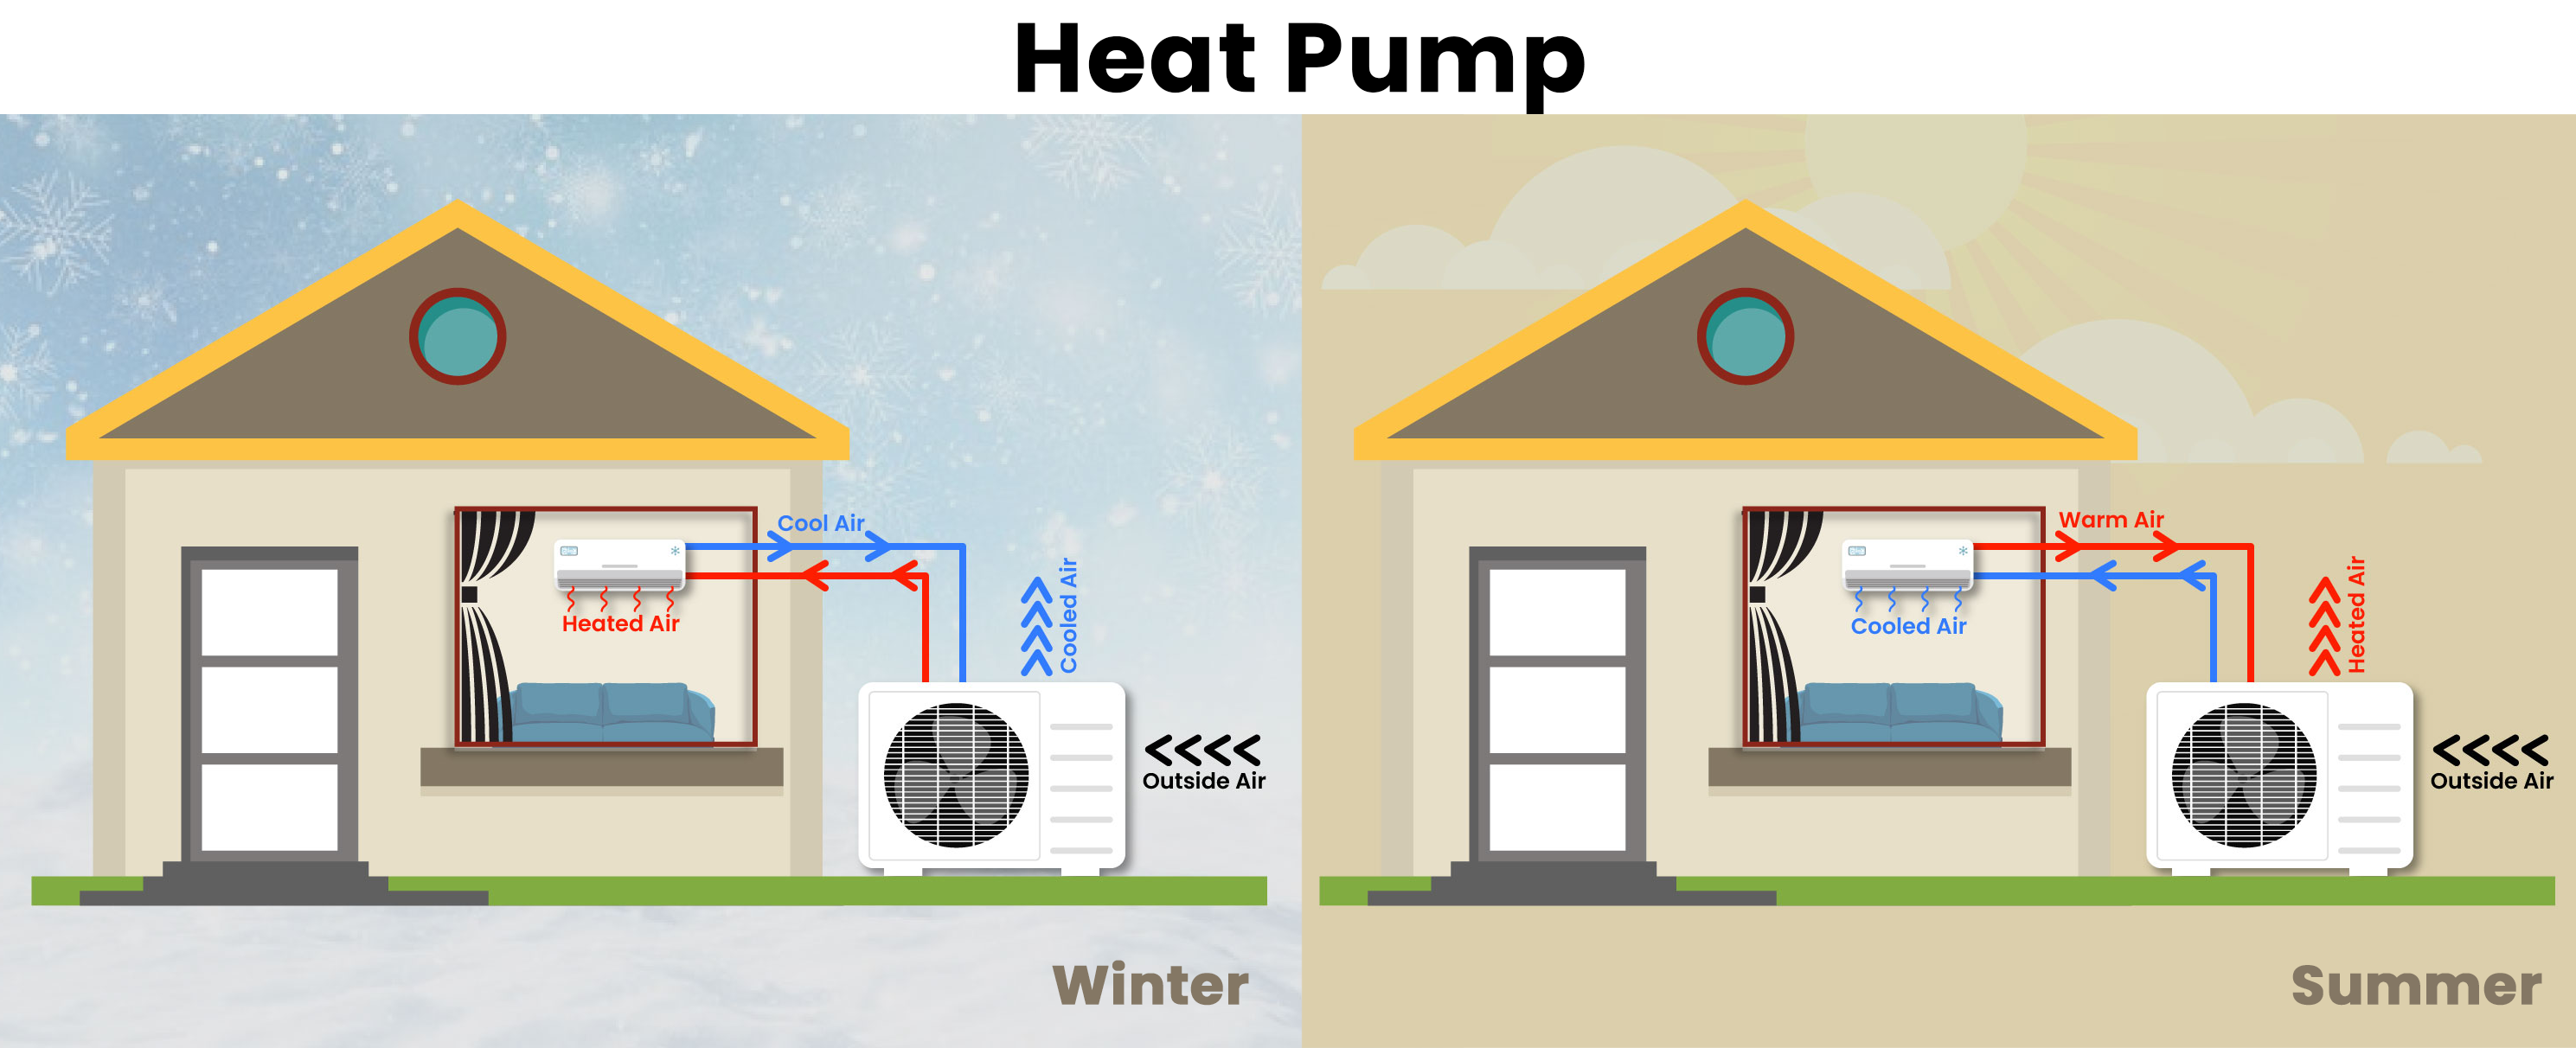 How a heat pump works in the different seasons.